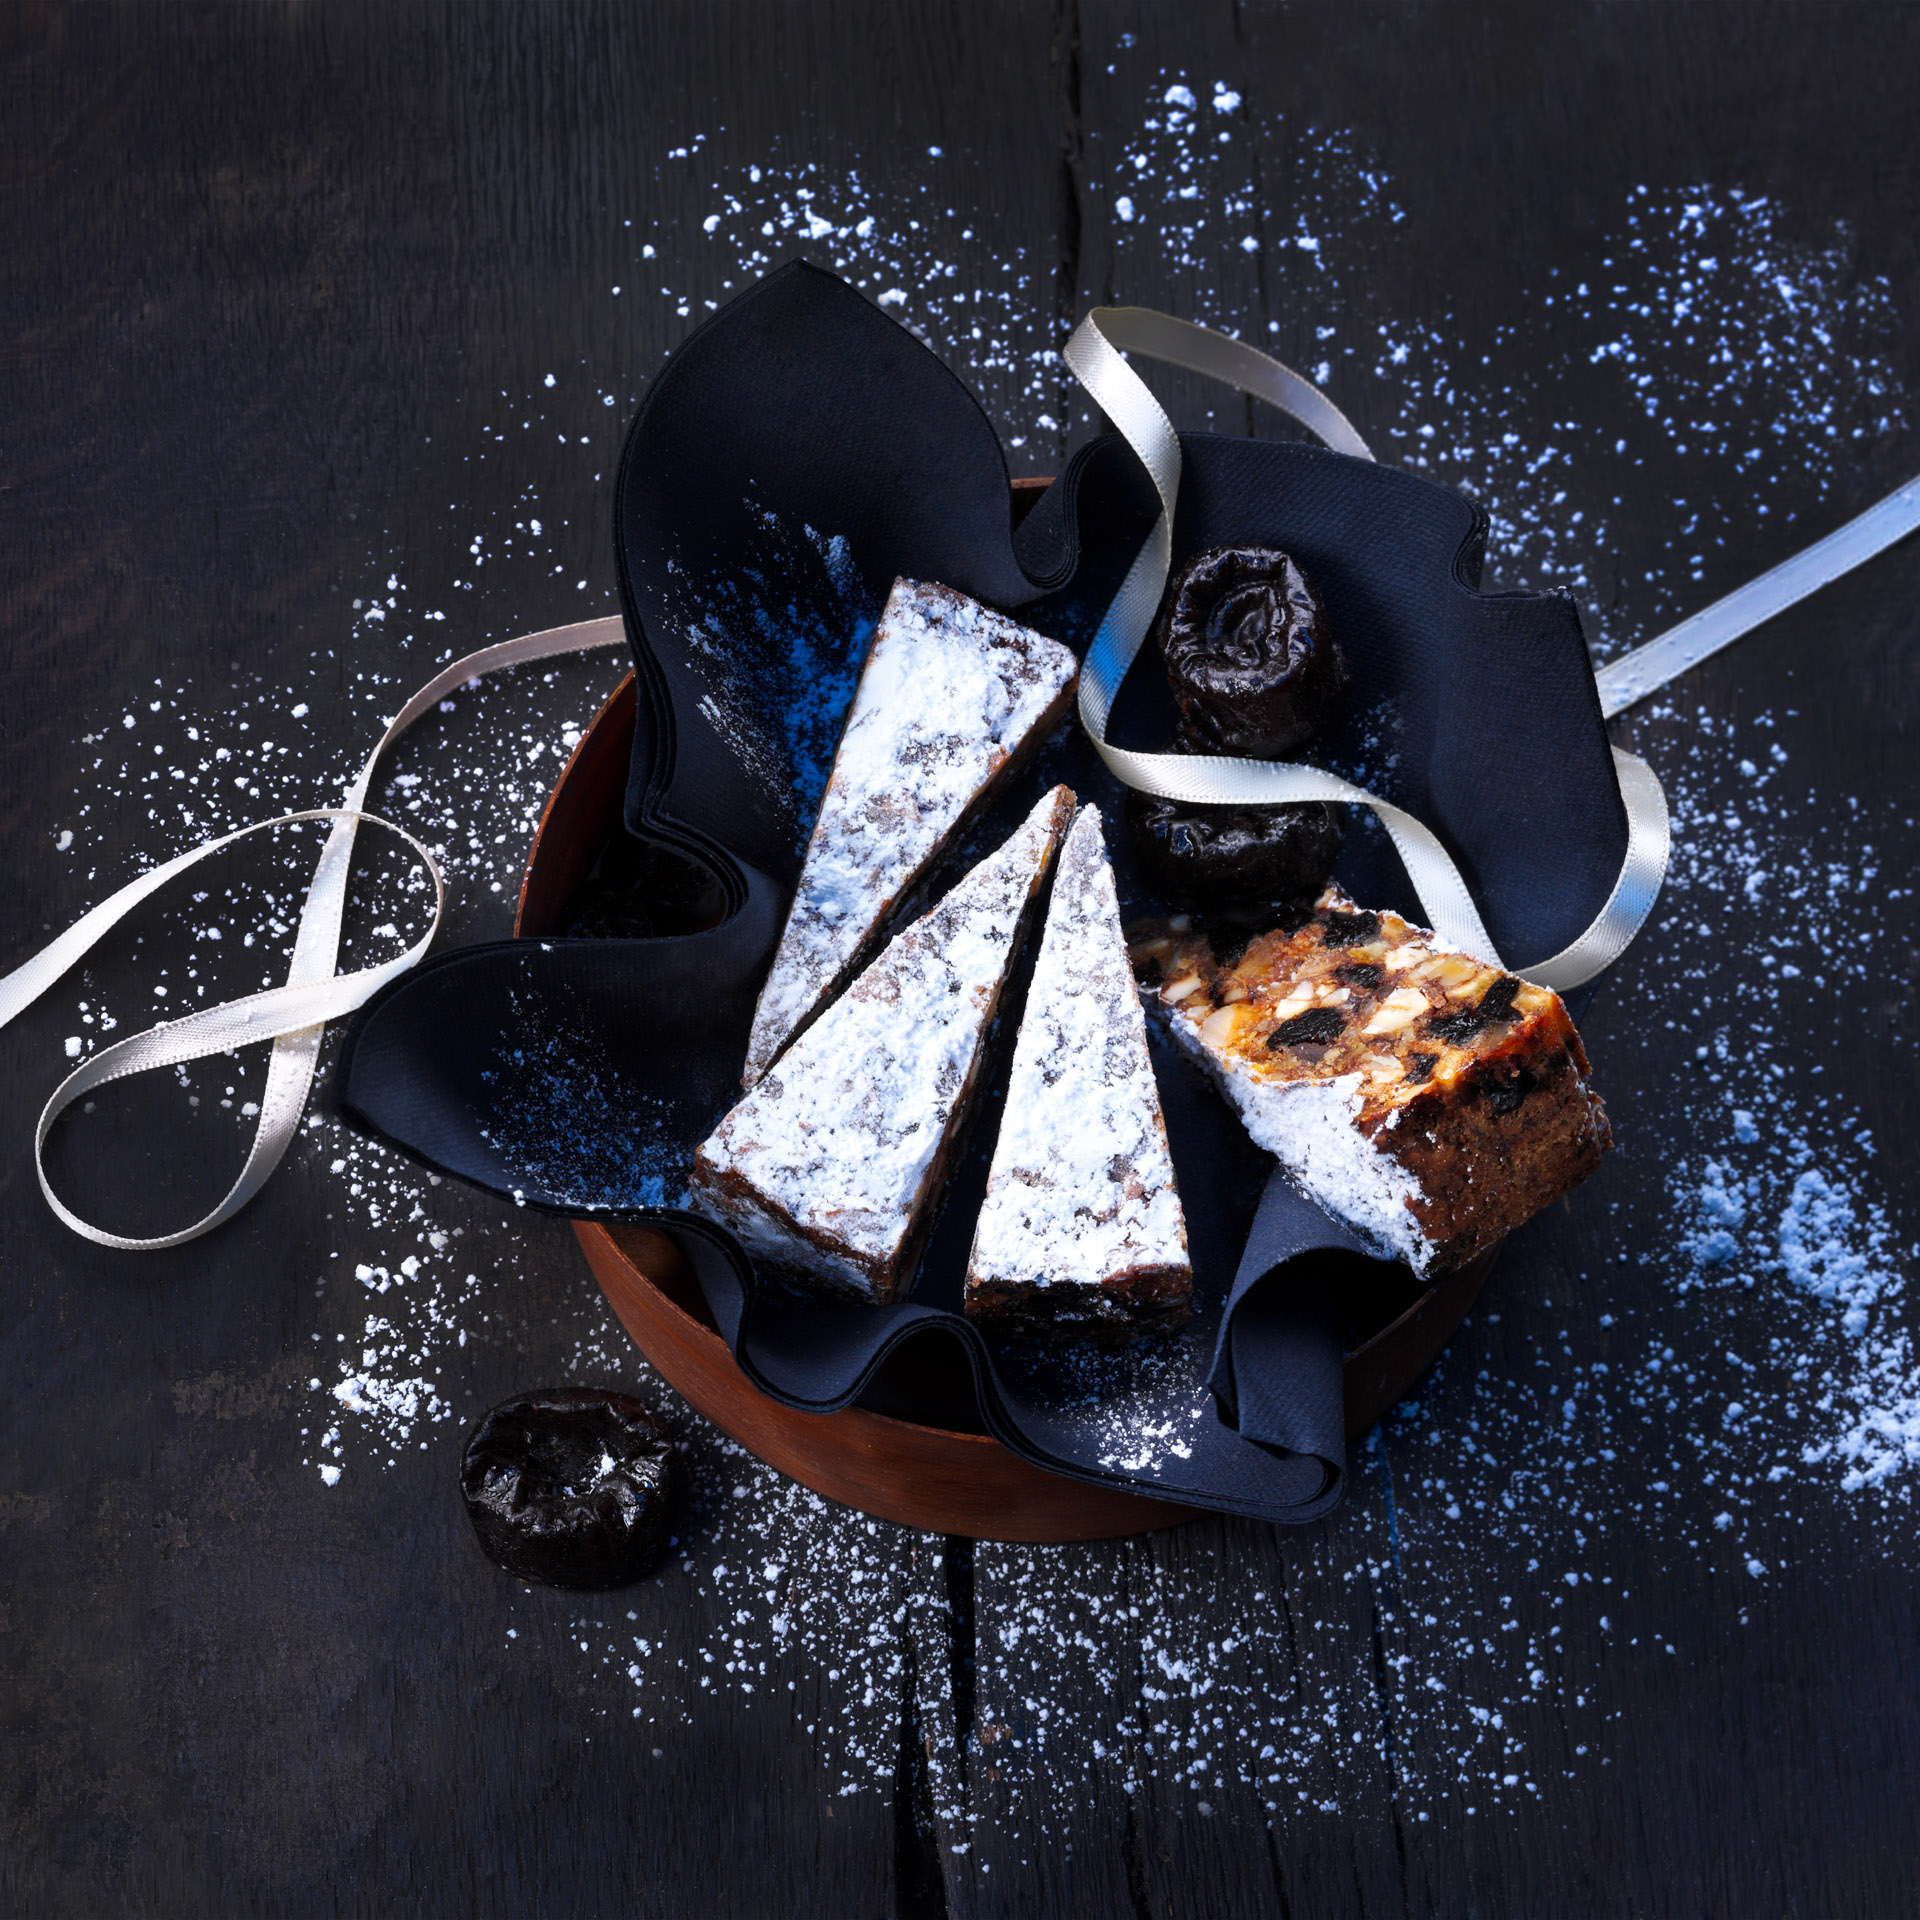 <p>This sumptuous Italian winter recipe is packed with fruits and nuts and is sure to add to your baking repertoire. Panforte can be served at the end of a meal with tea or coffee or packaged for the holiday gift-giving season.</p>